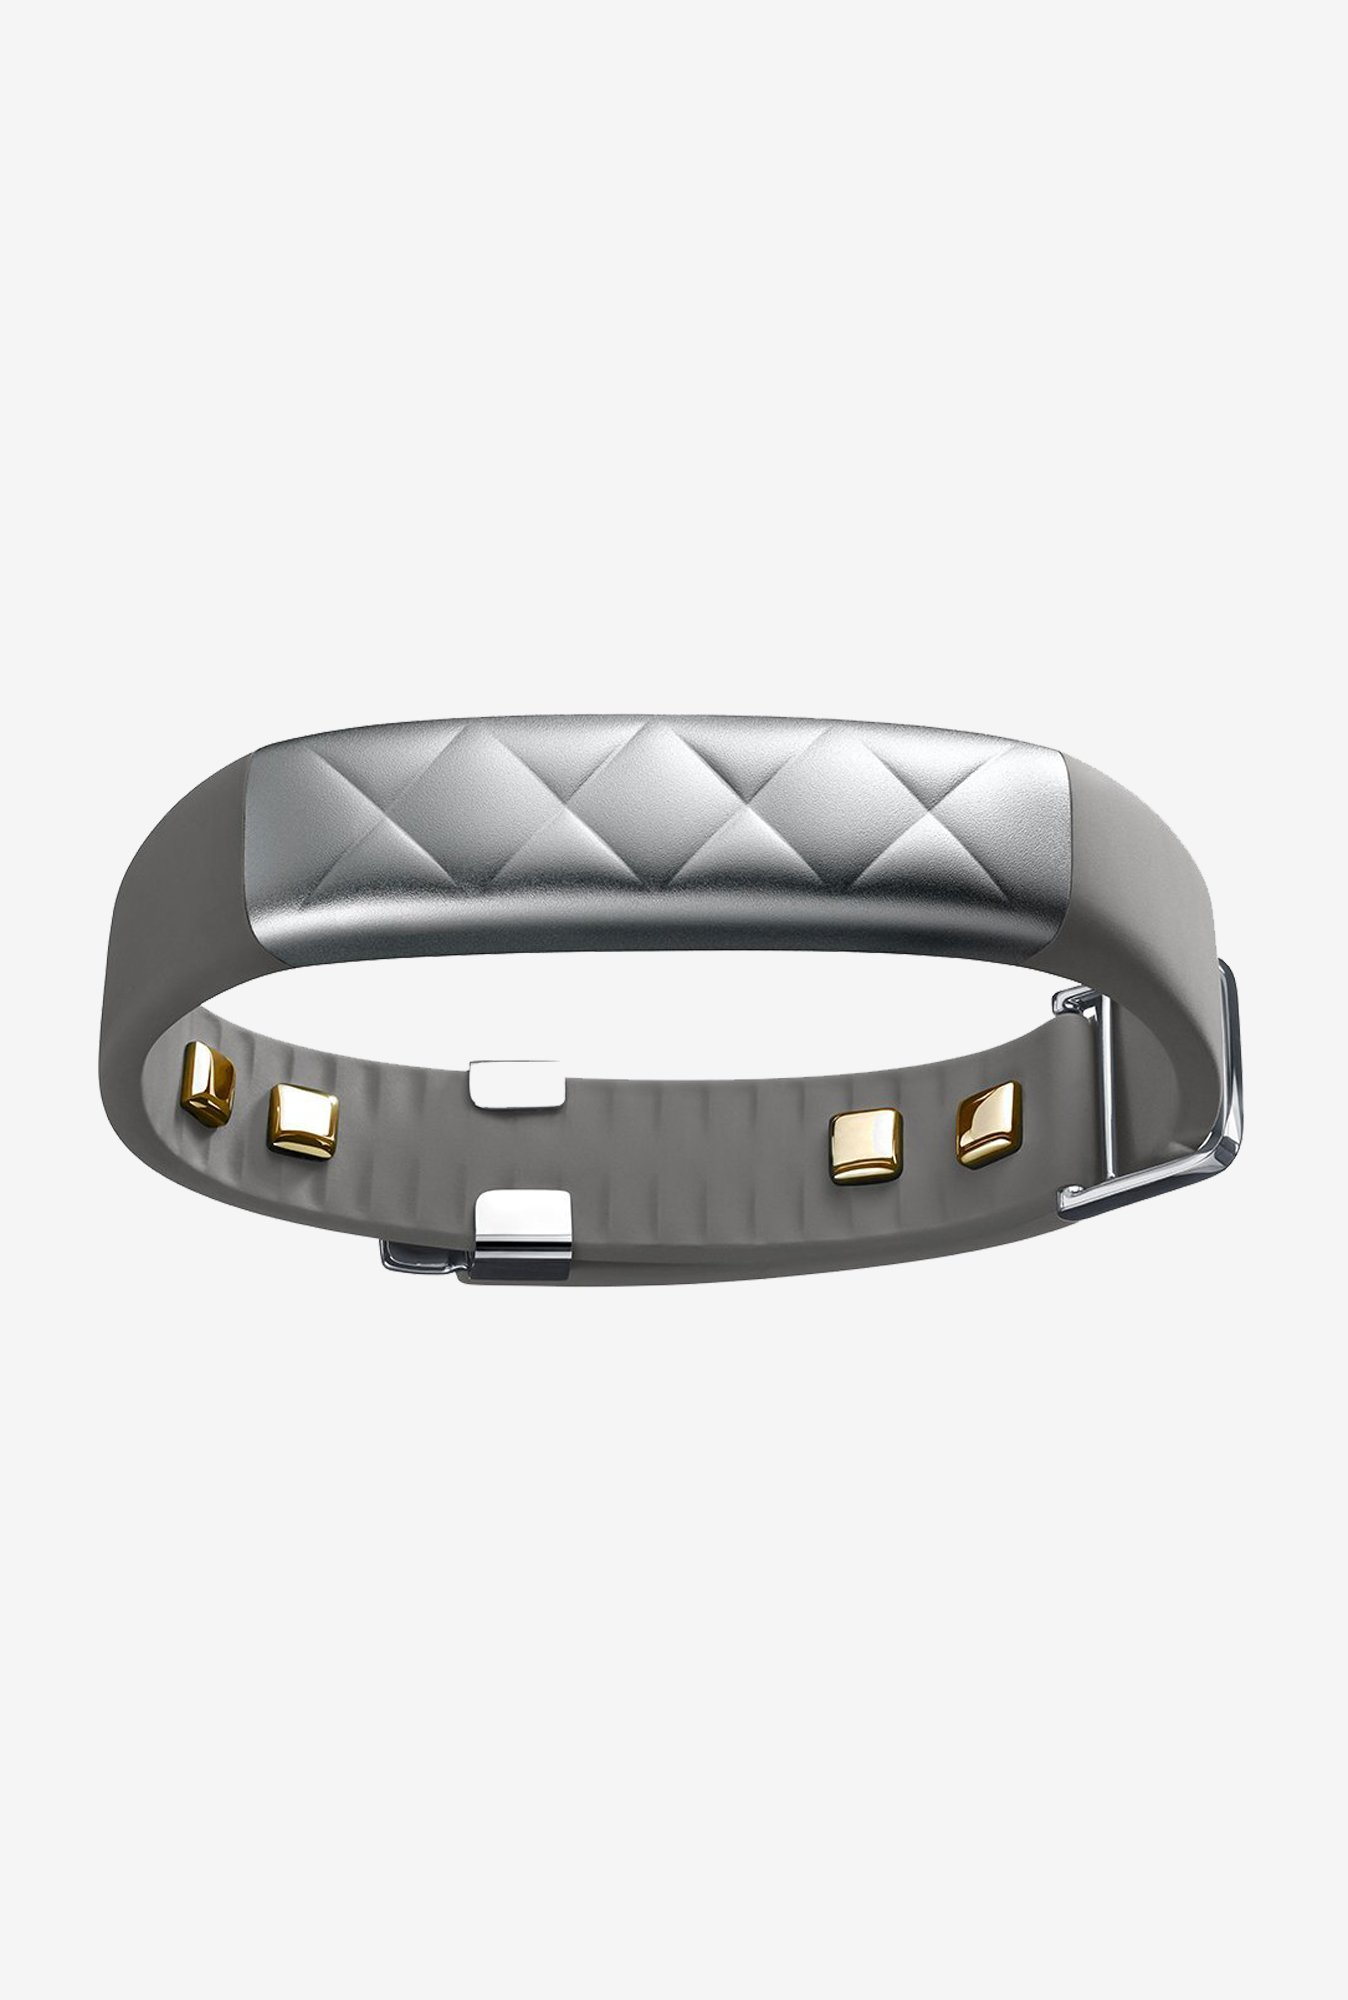 Jawbone UP3 Activity Tracker (Silver Cross)